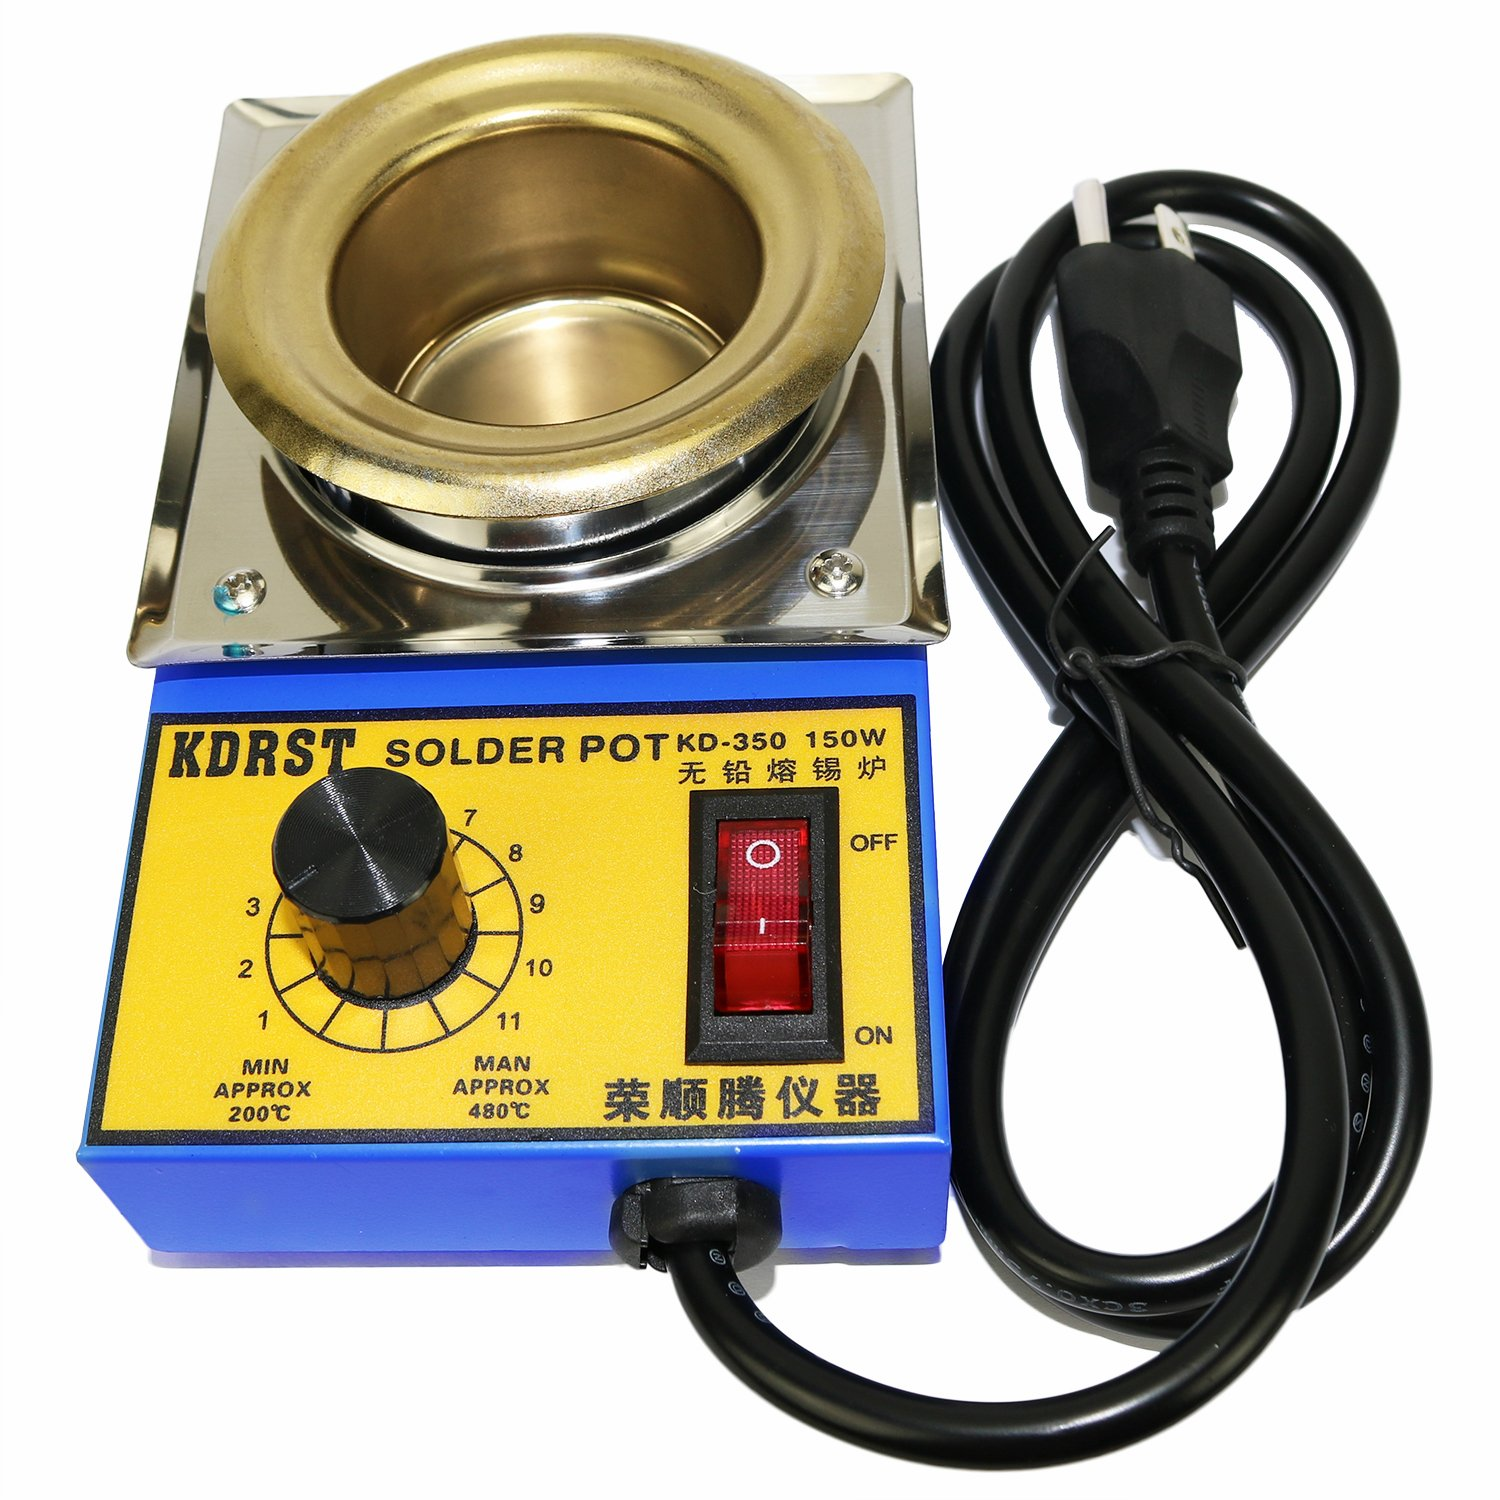 50mm Lead Free Solder Pot with 500g Capactity for Welding and Soldering Bath, 110V 150W